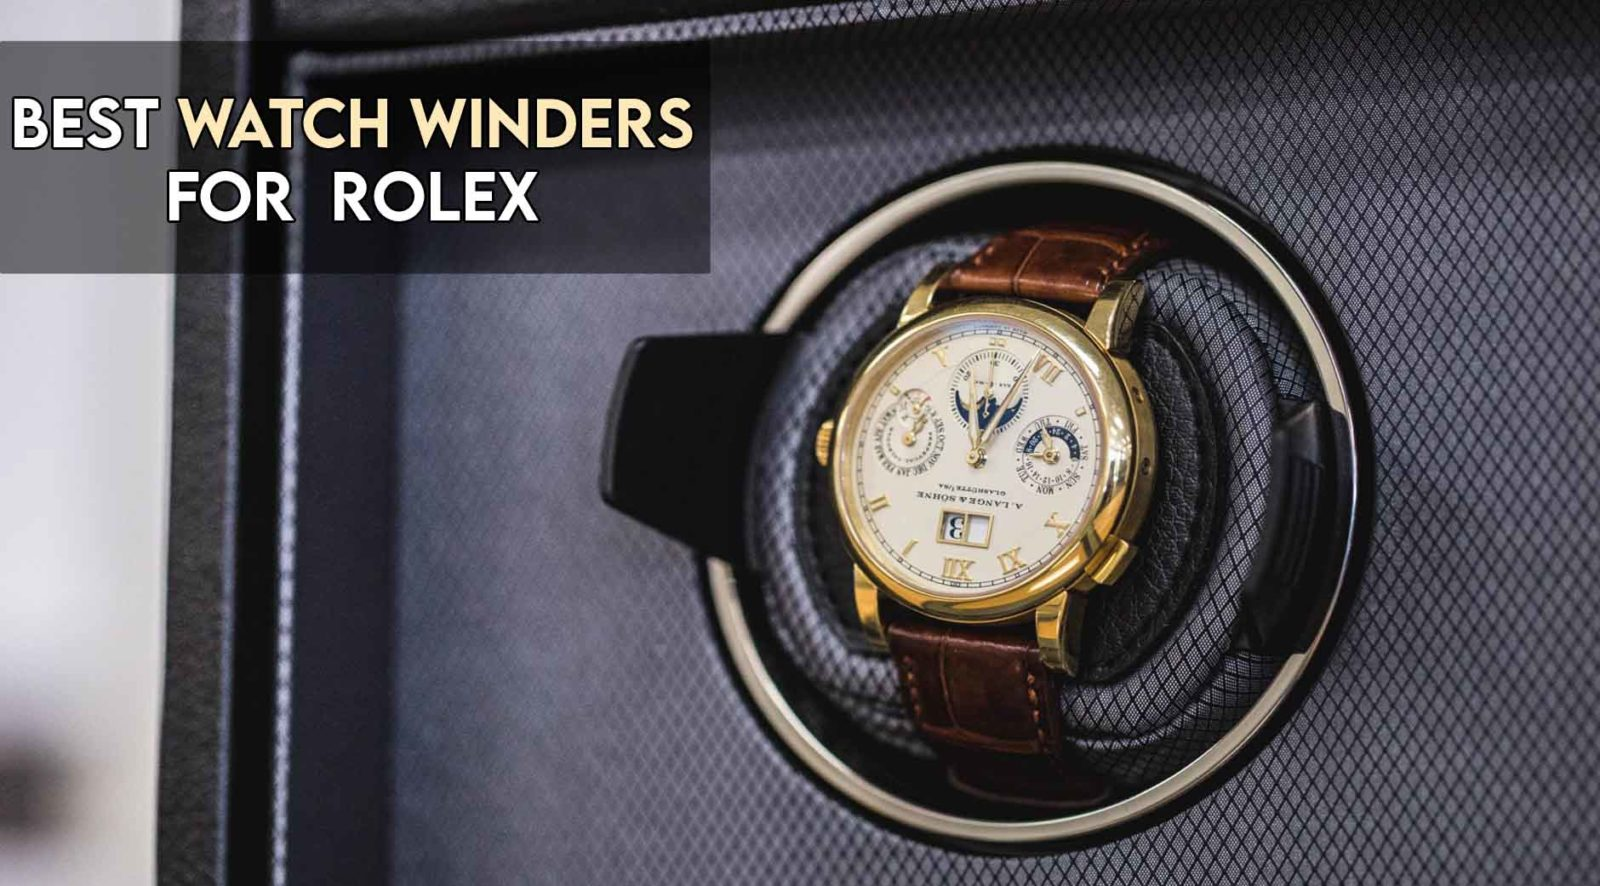 Best watch winder for rolex